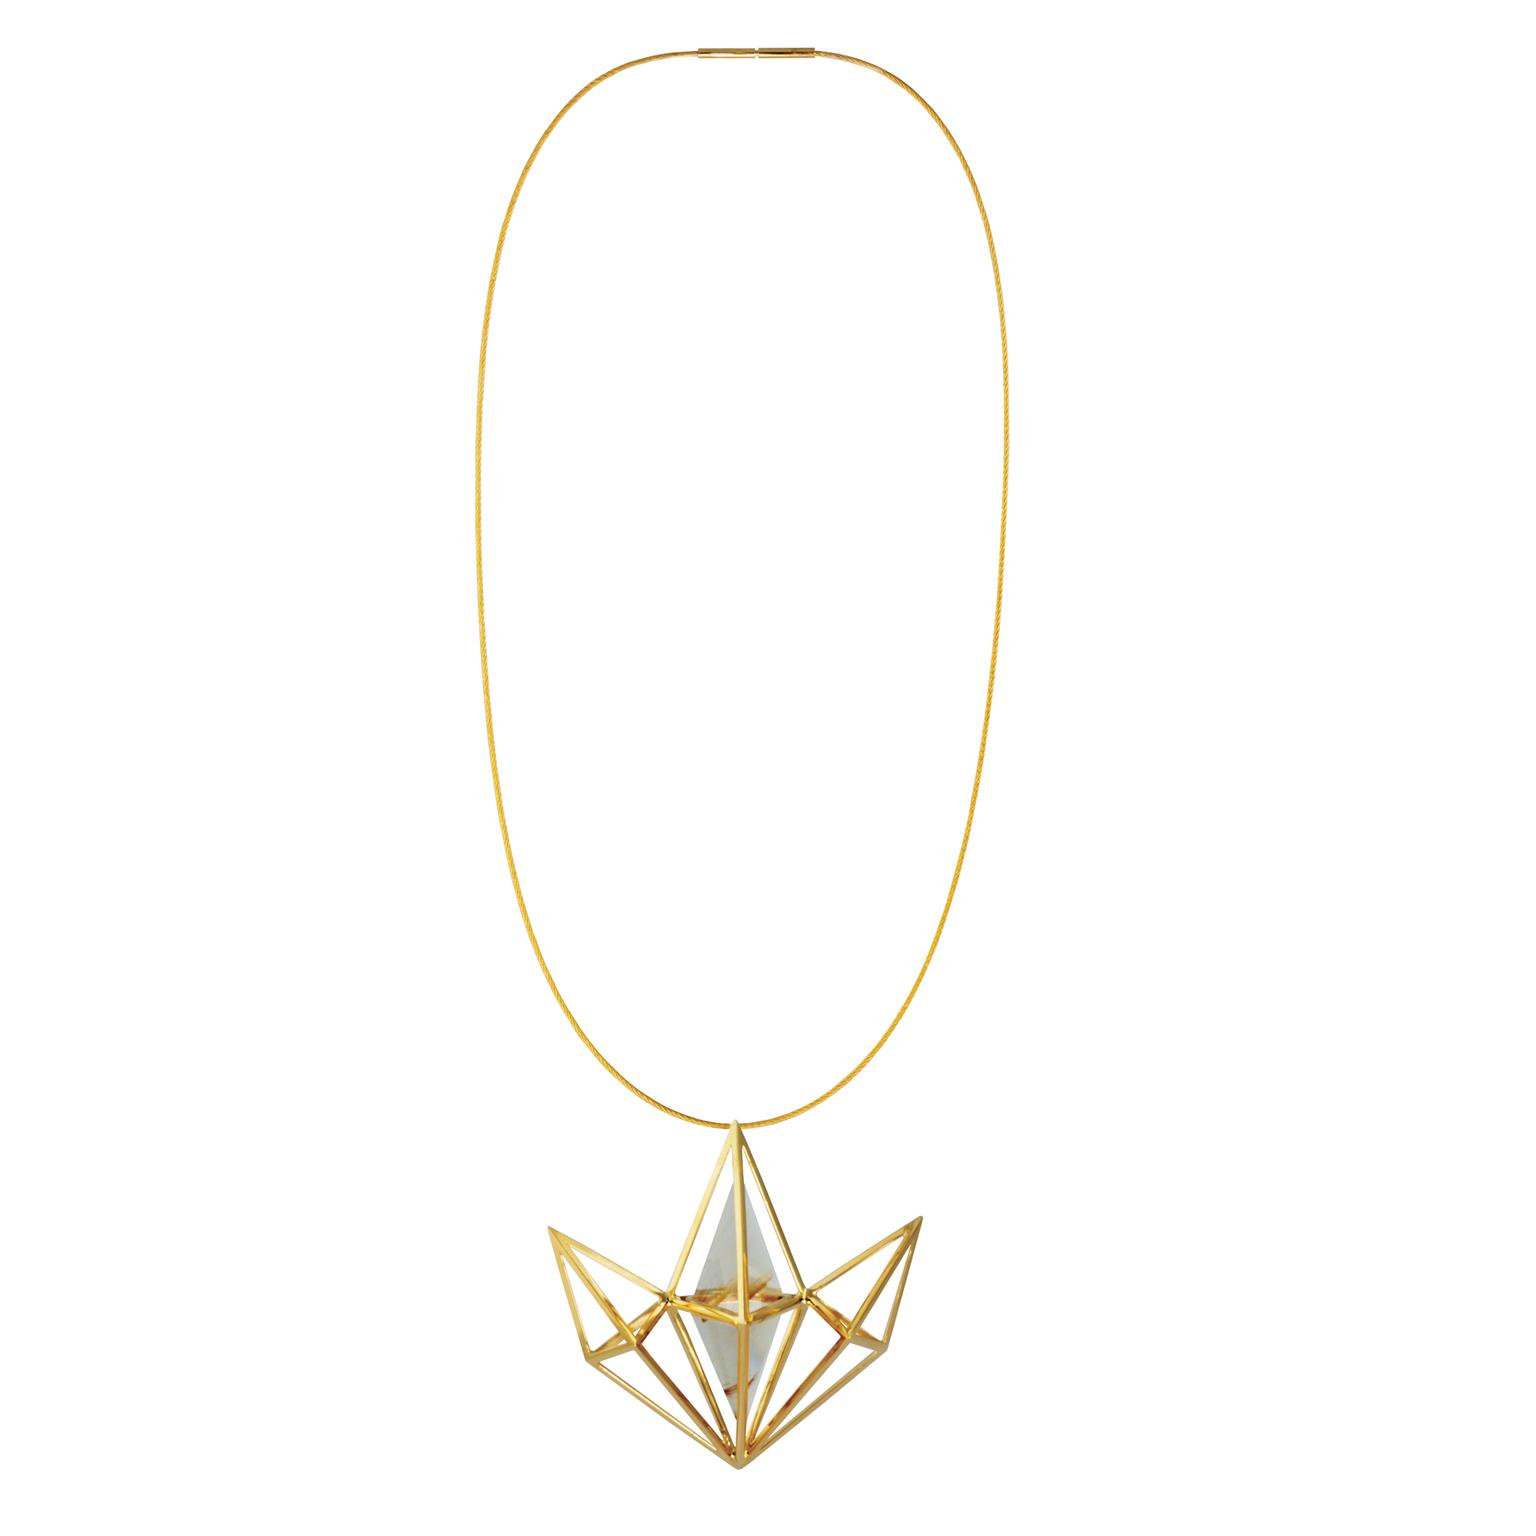 Kattri Fan necklace